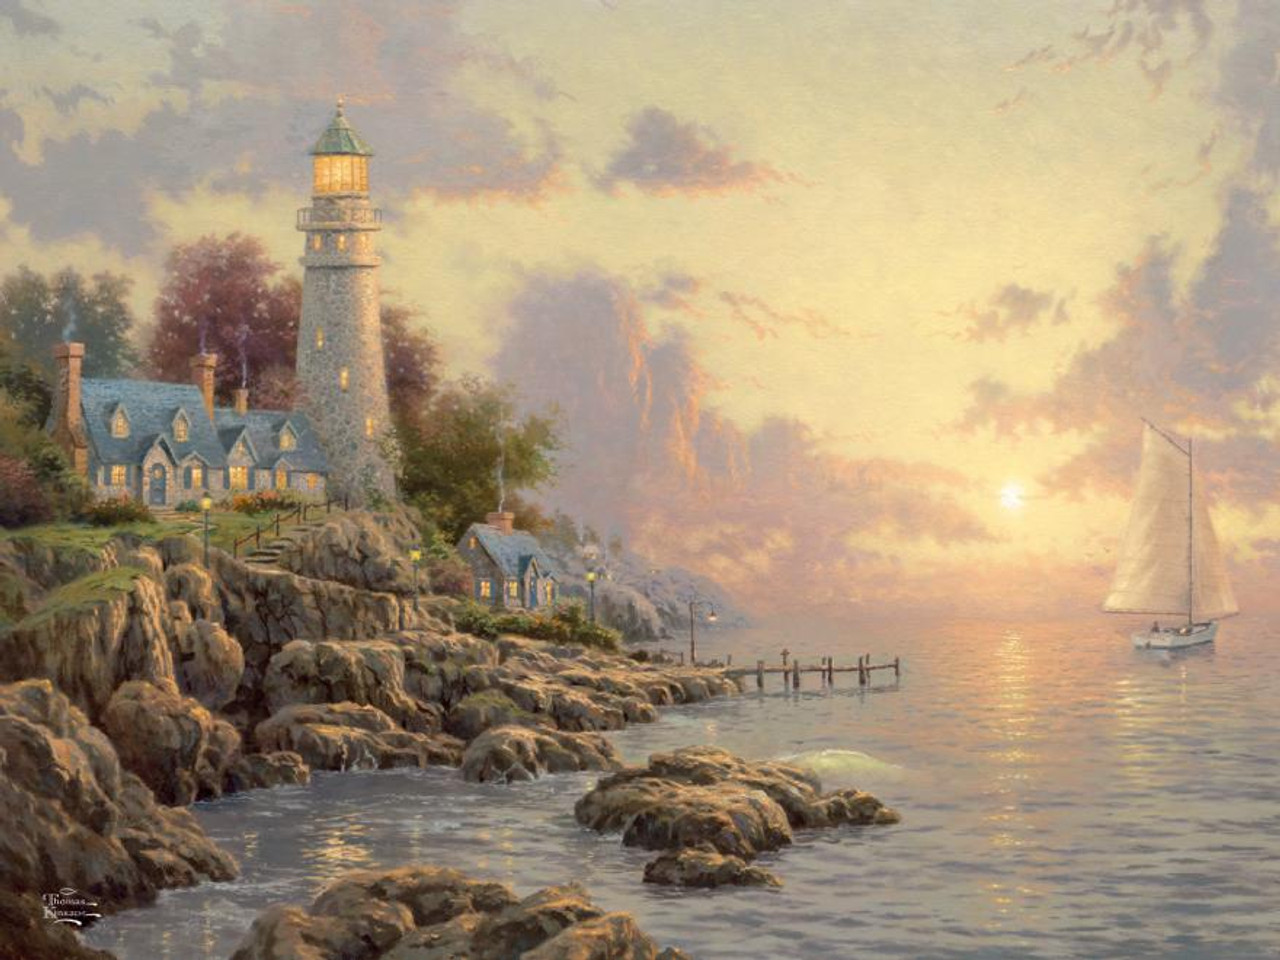 Ceaco Thomas Kinkade Special Edition The Sea of Tranquility Puzzle 1148-6